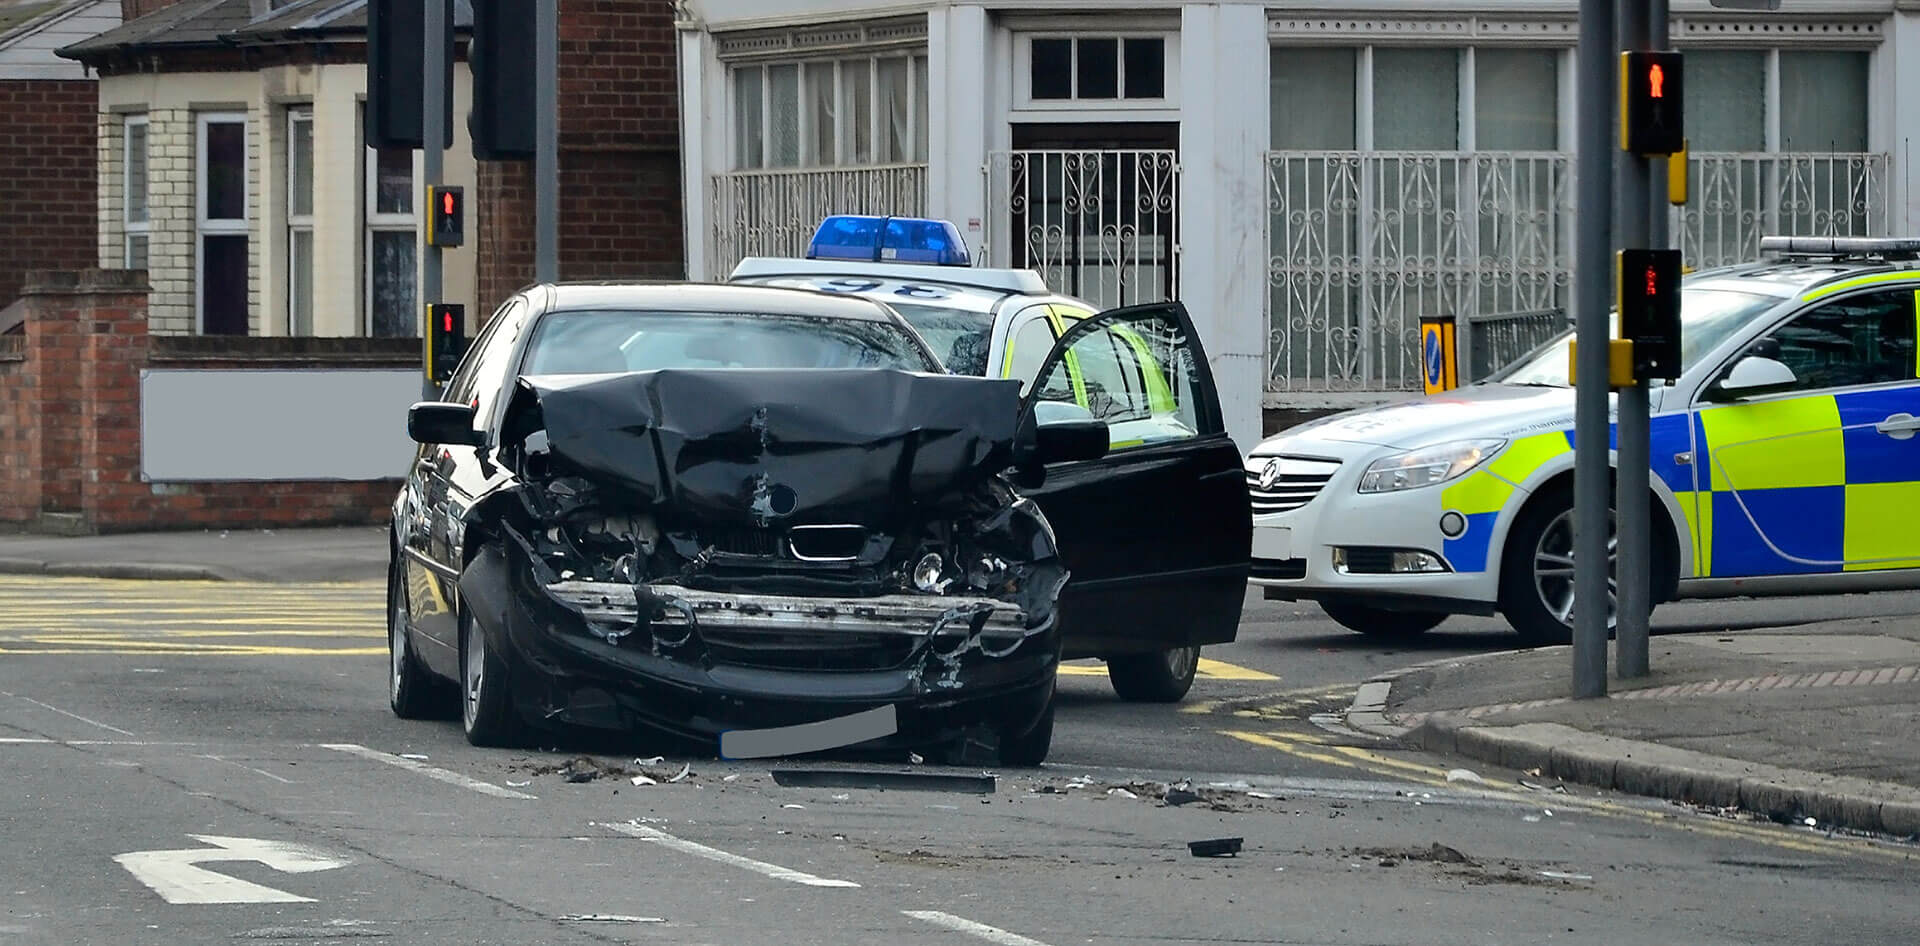 Car involved in road traffic accident